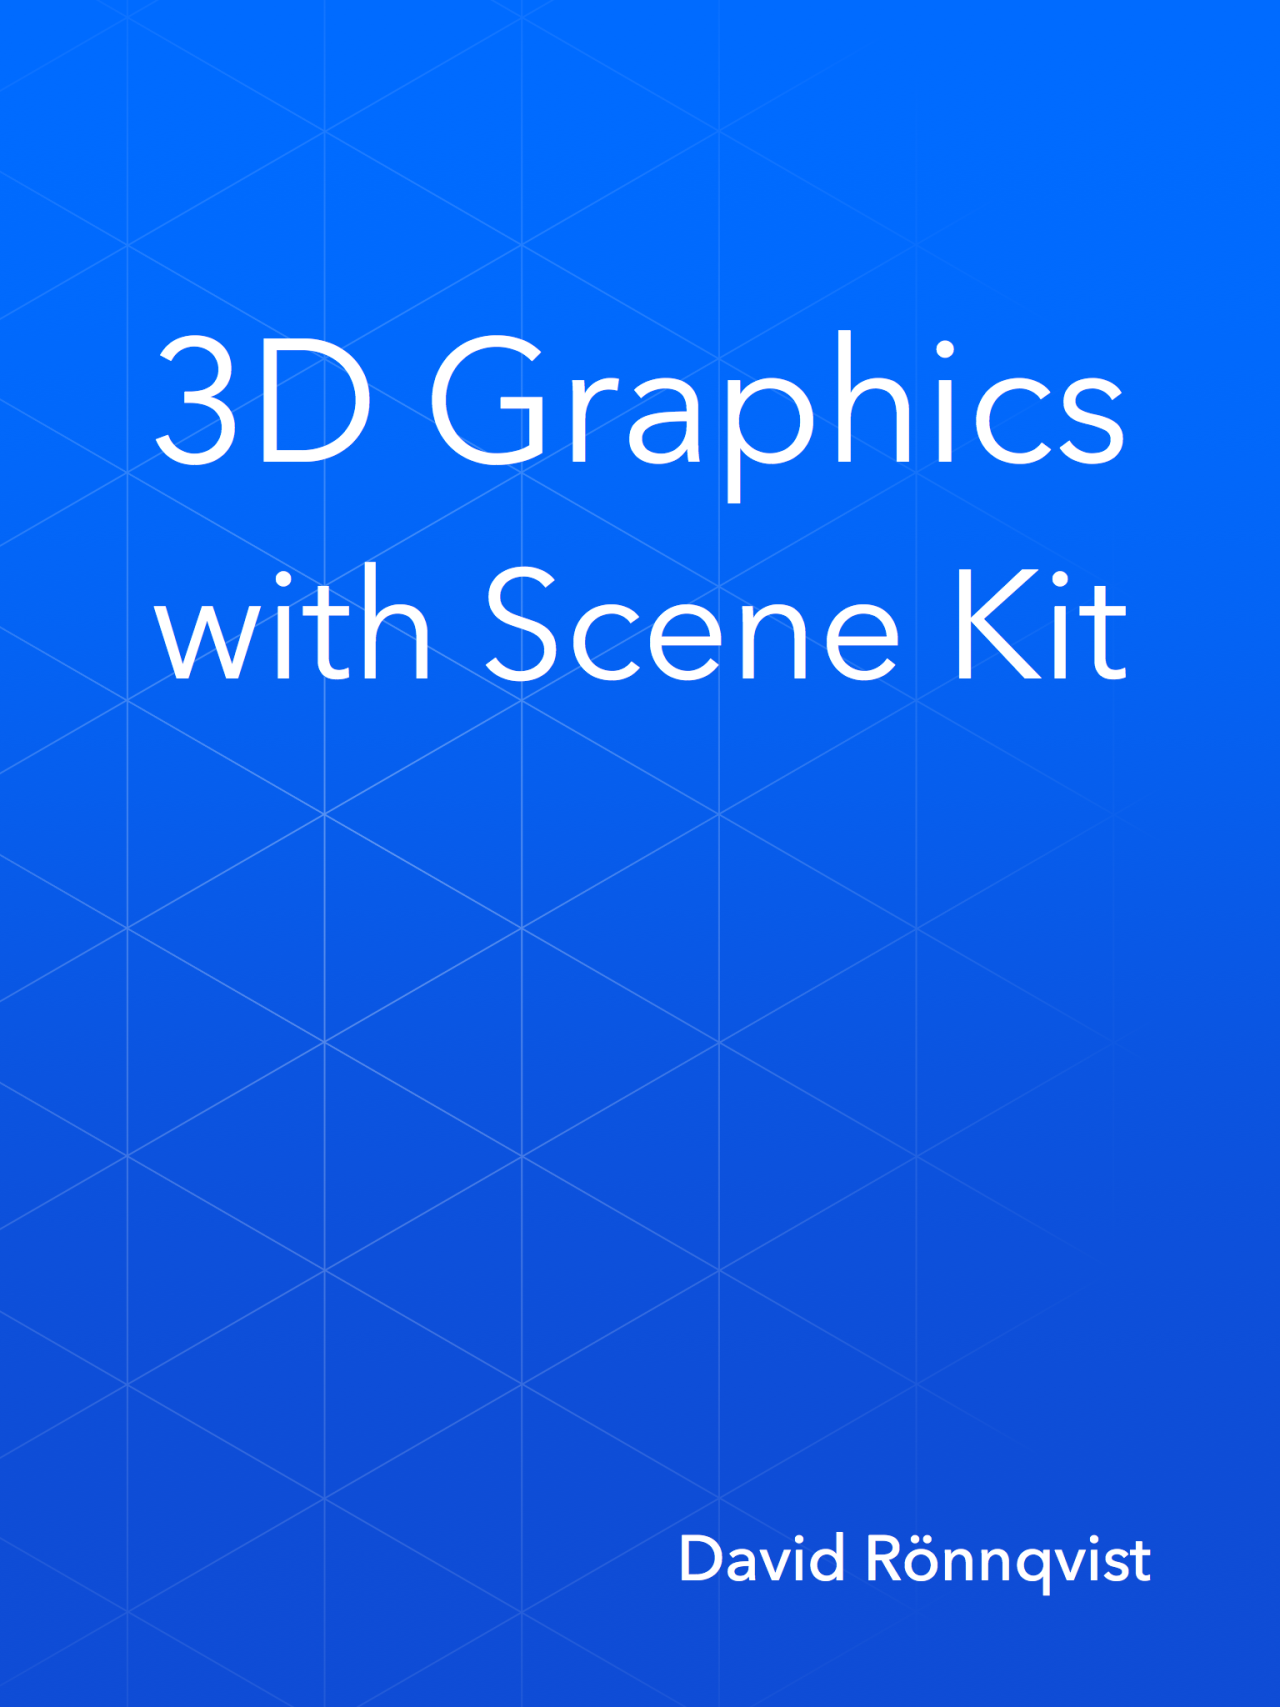 3D GRAPHICS WITH SCENE KIT    Copy editor for a book about creating 3D graphics in Scene Kit.